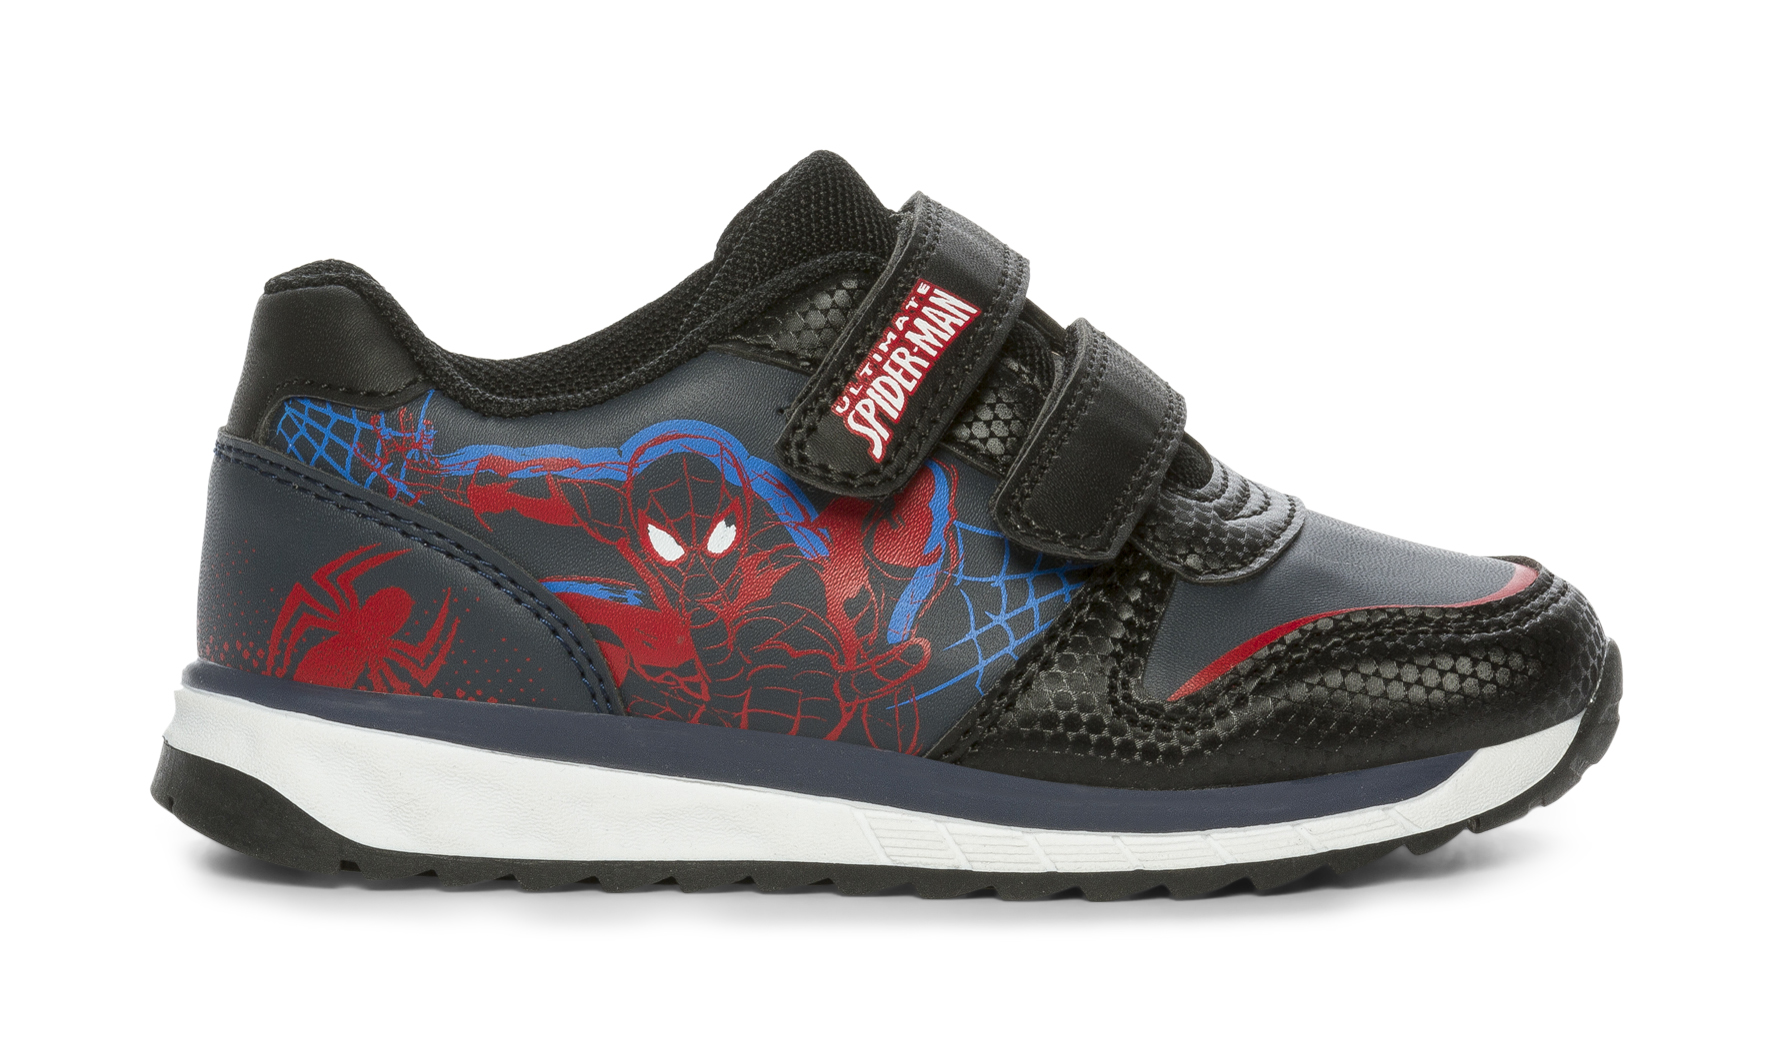 f577ebec Spiderman Sneakers - Sort 308529 feetfirst.no